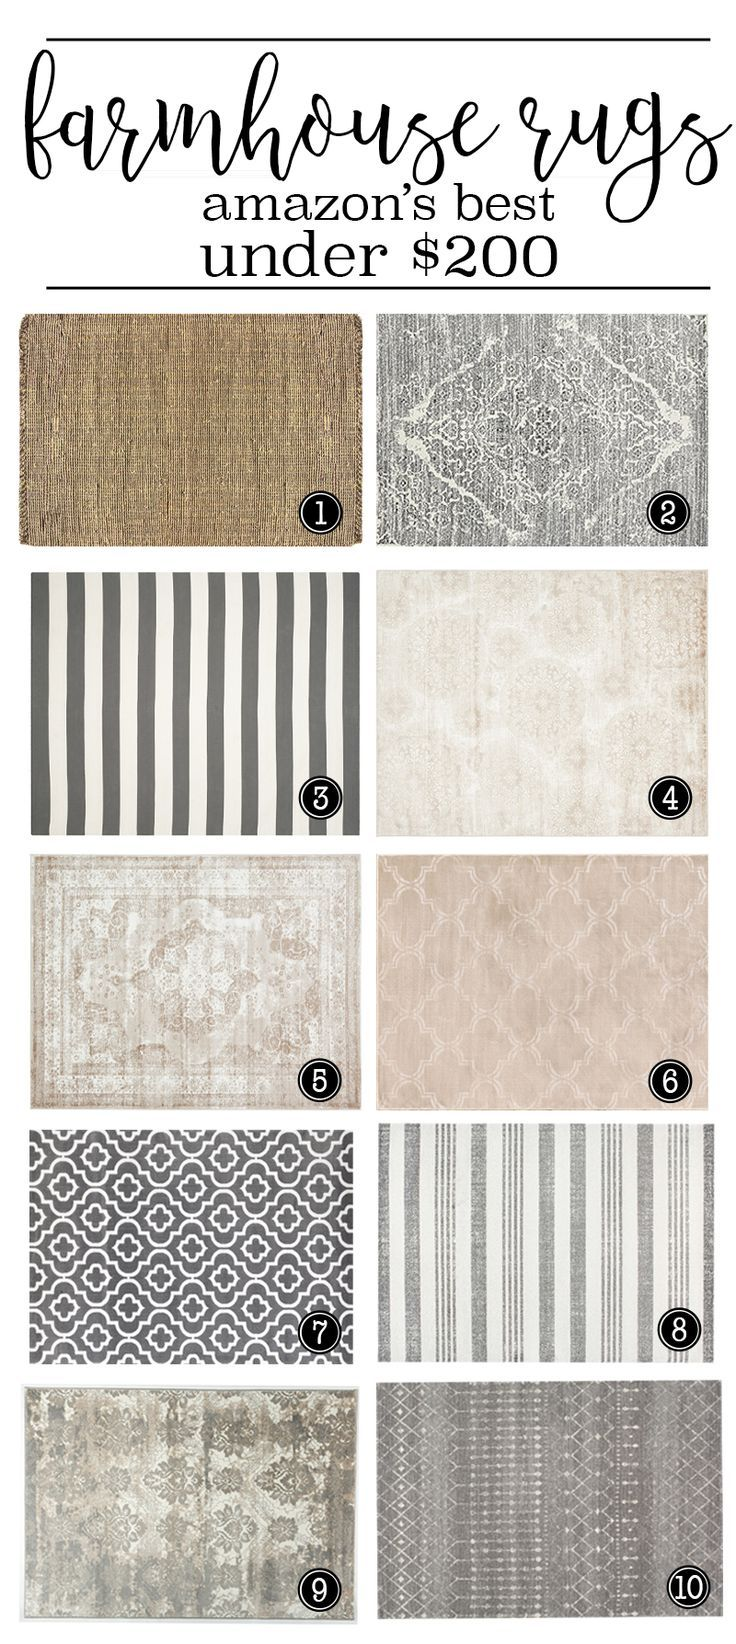 Where To Buy The Best Farmhouse Rugs Under 200 With Images